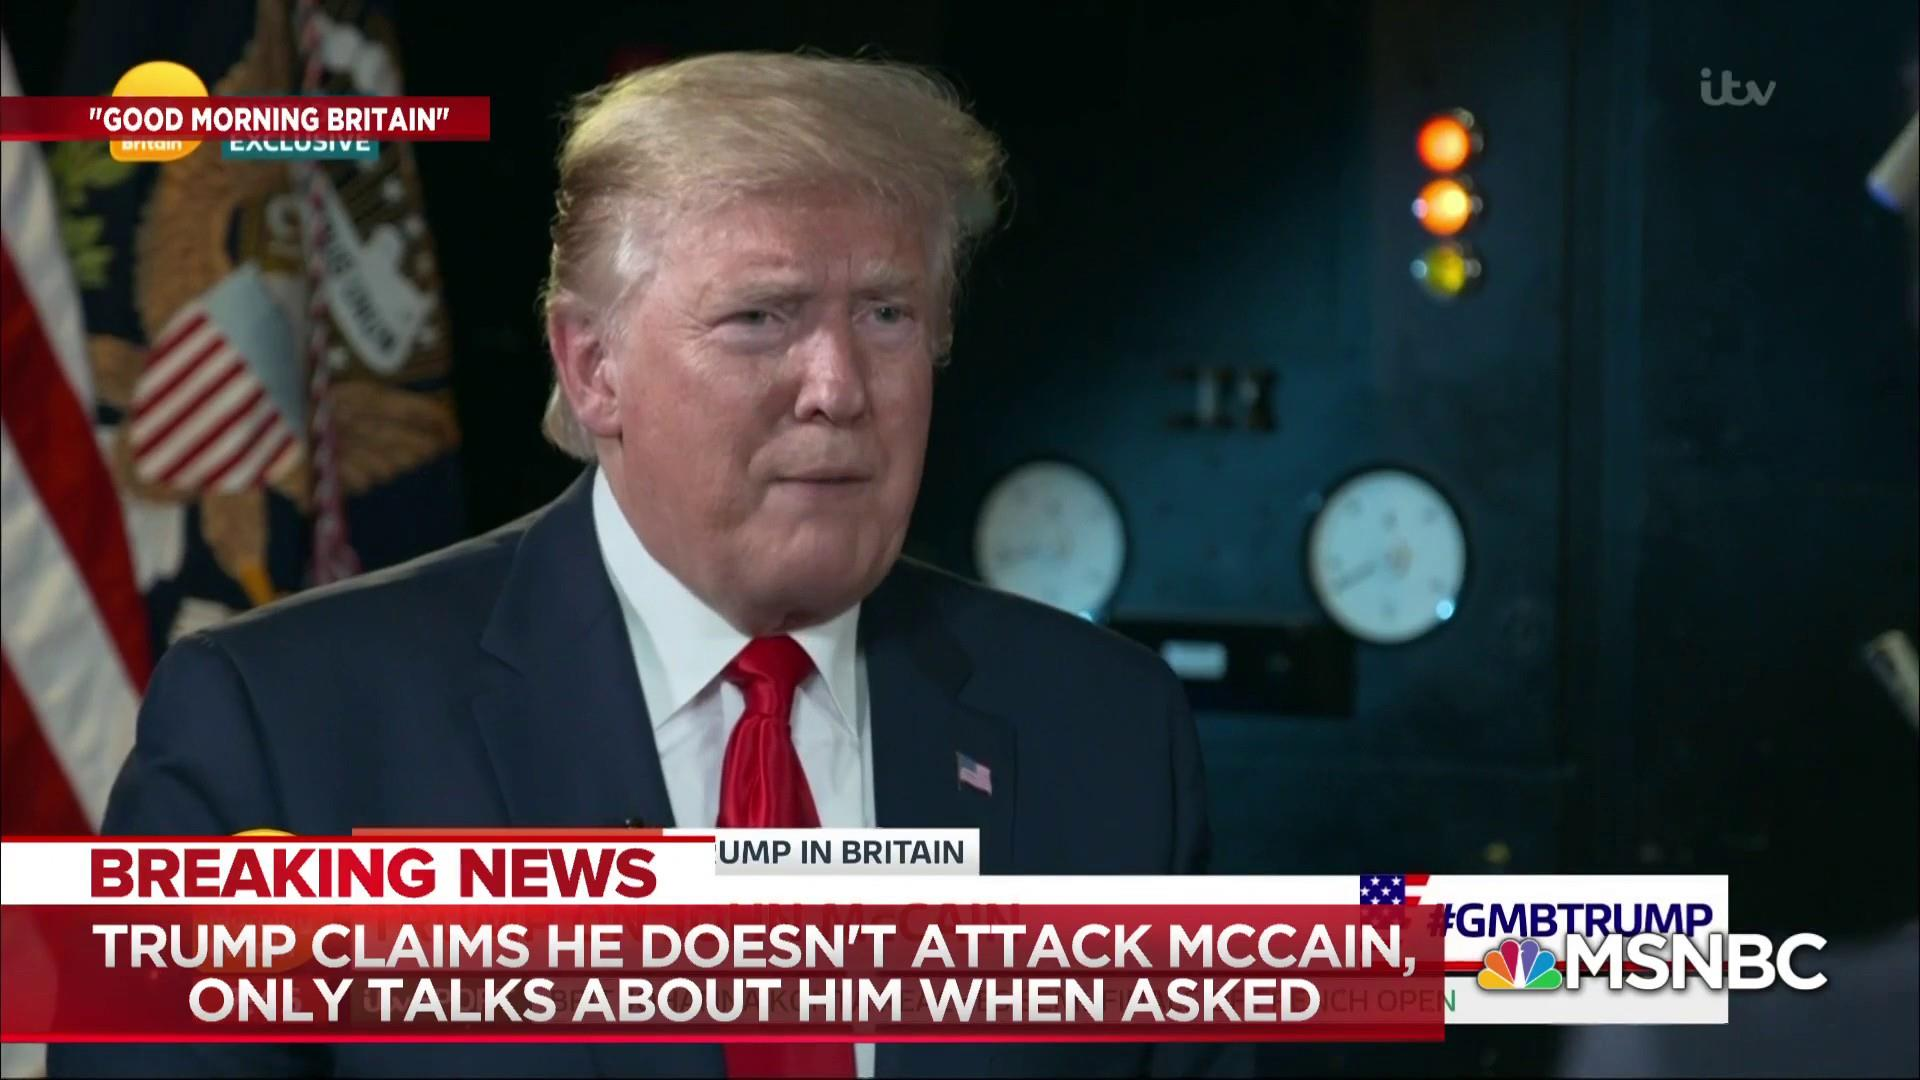 Trump argues that he only talks about McCain when prompted